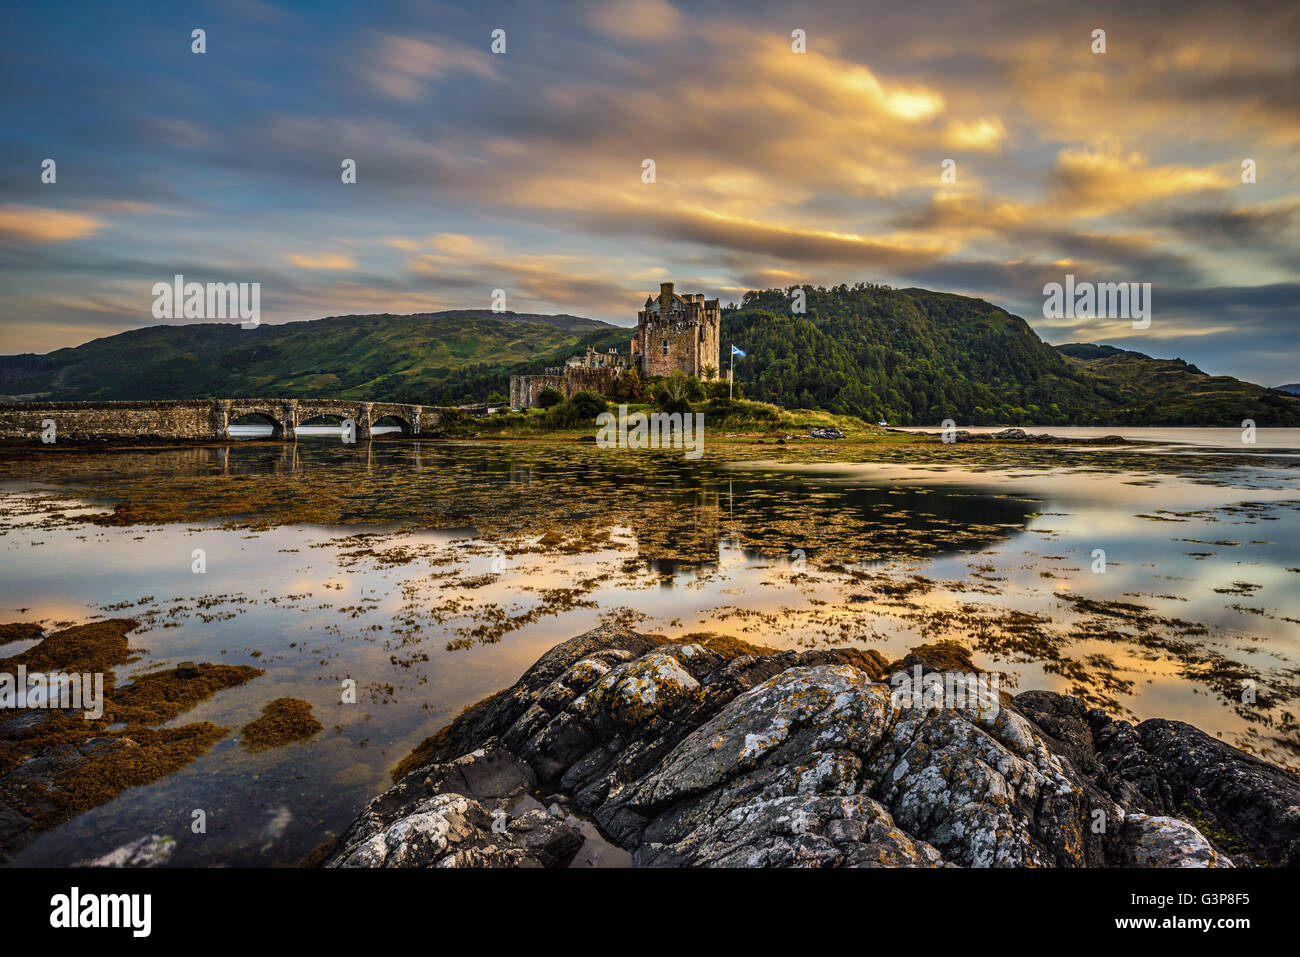 Sunset over Eilean Donan Castle, Scotland, United Kingdom. Long exposure. Stock Photo